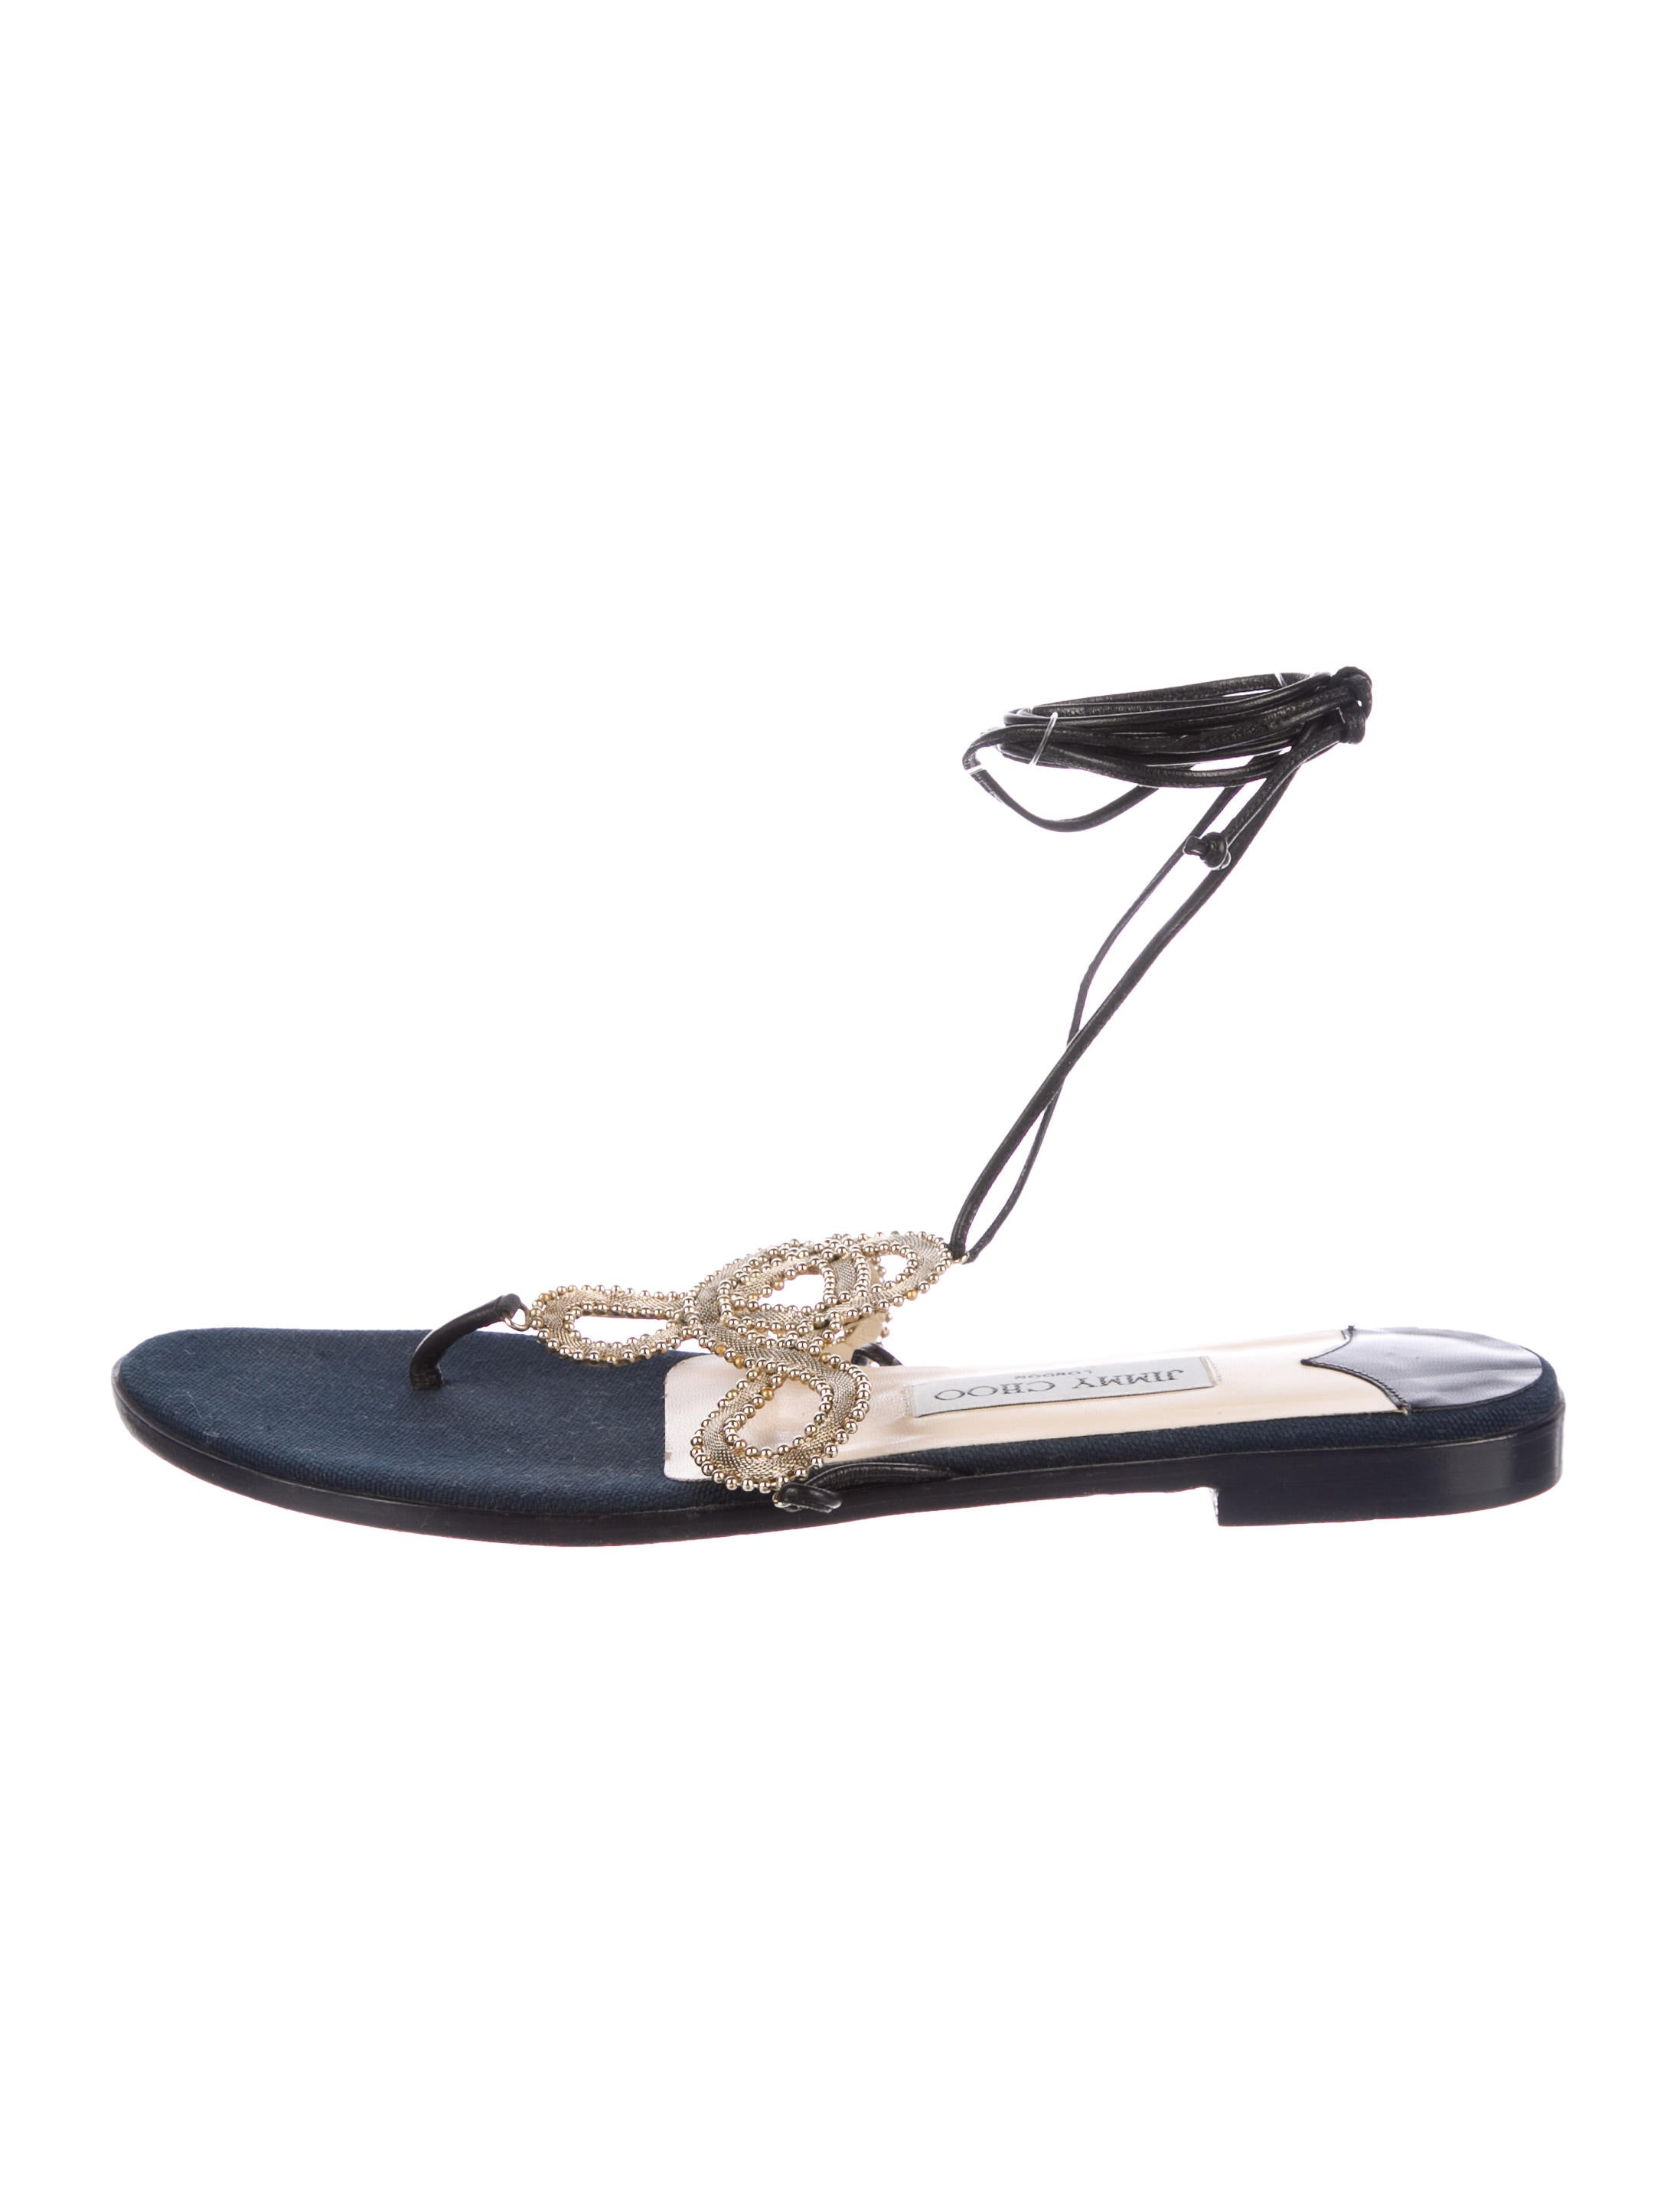 73058aad9fac93 Jimmy Choo Embellished Wrap-Around Sandals - Shoes - JIM96727